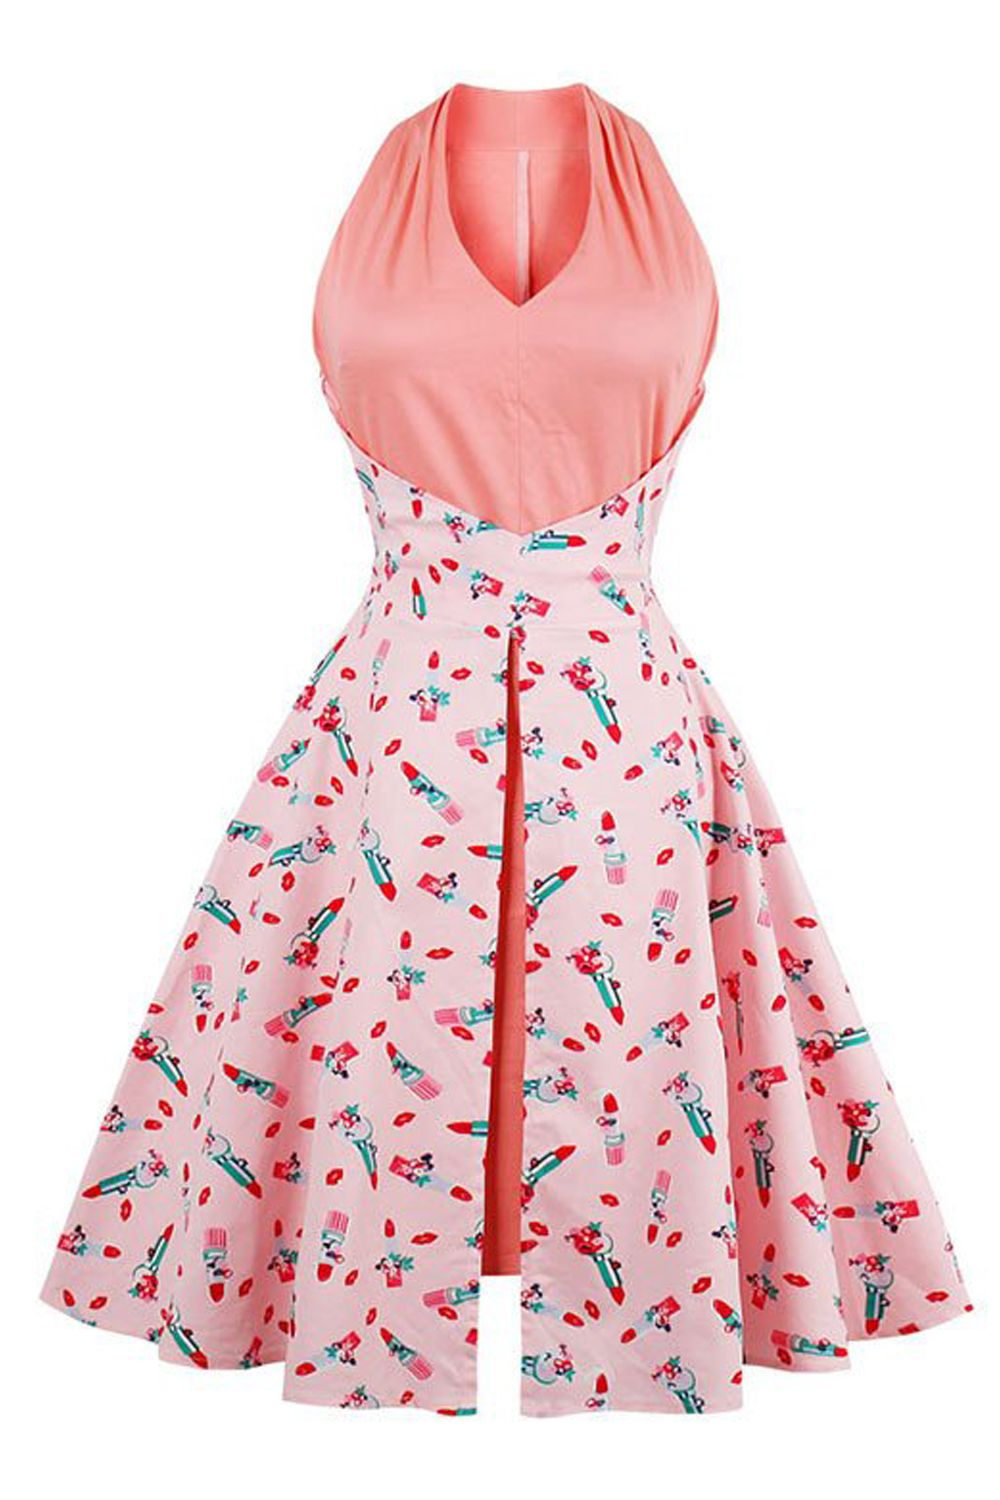 401d3b4152df5 The Atomic Lipstick Kiss Print Swing Dress features a pink retro ...